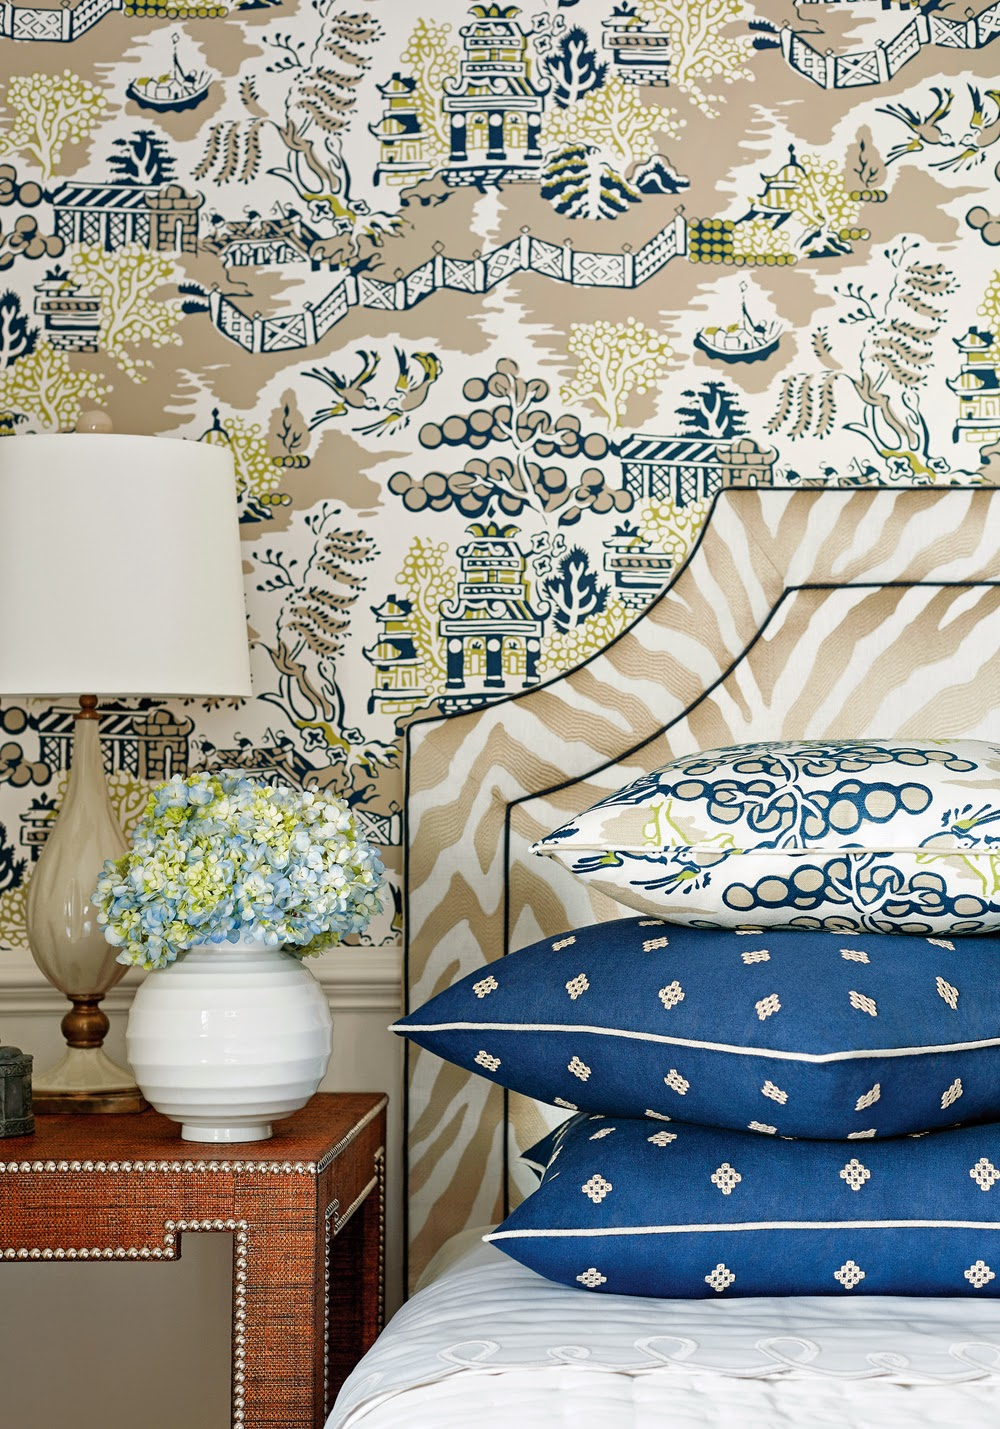 http://www.thibautdesign.com/collection/high_res.php?patternID=1526&productID=10721